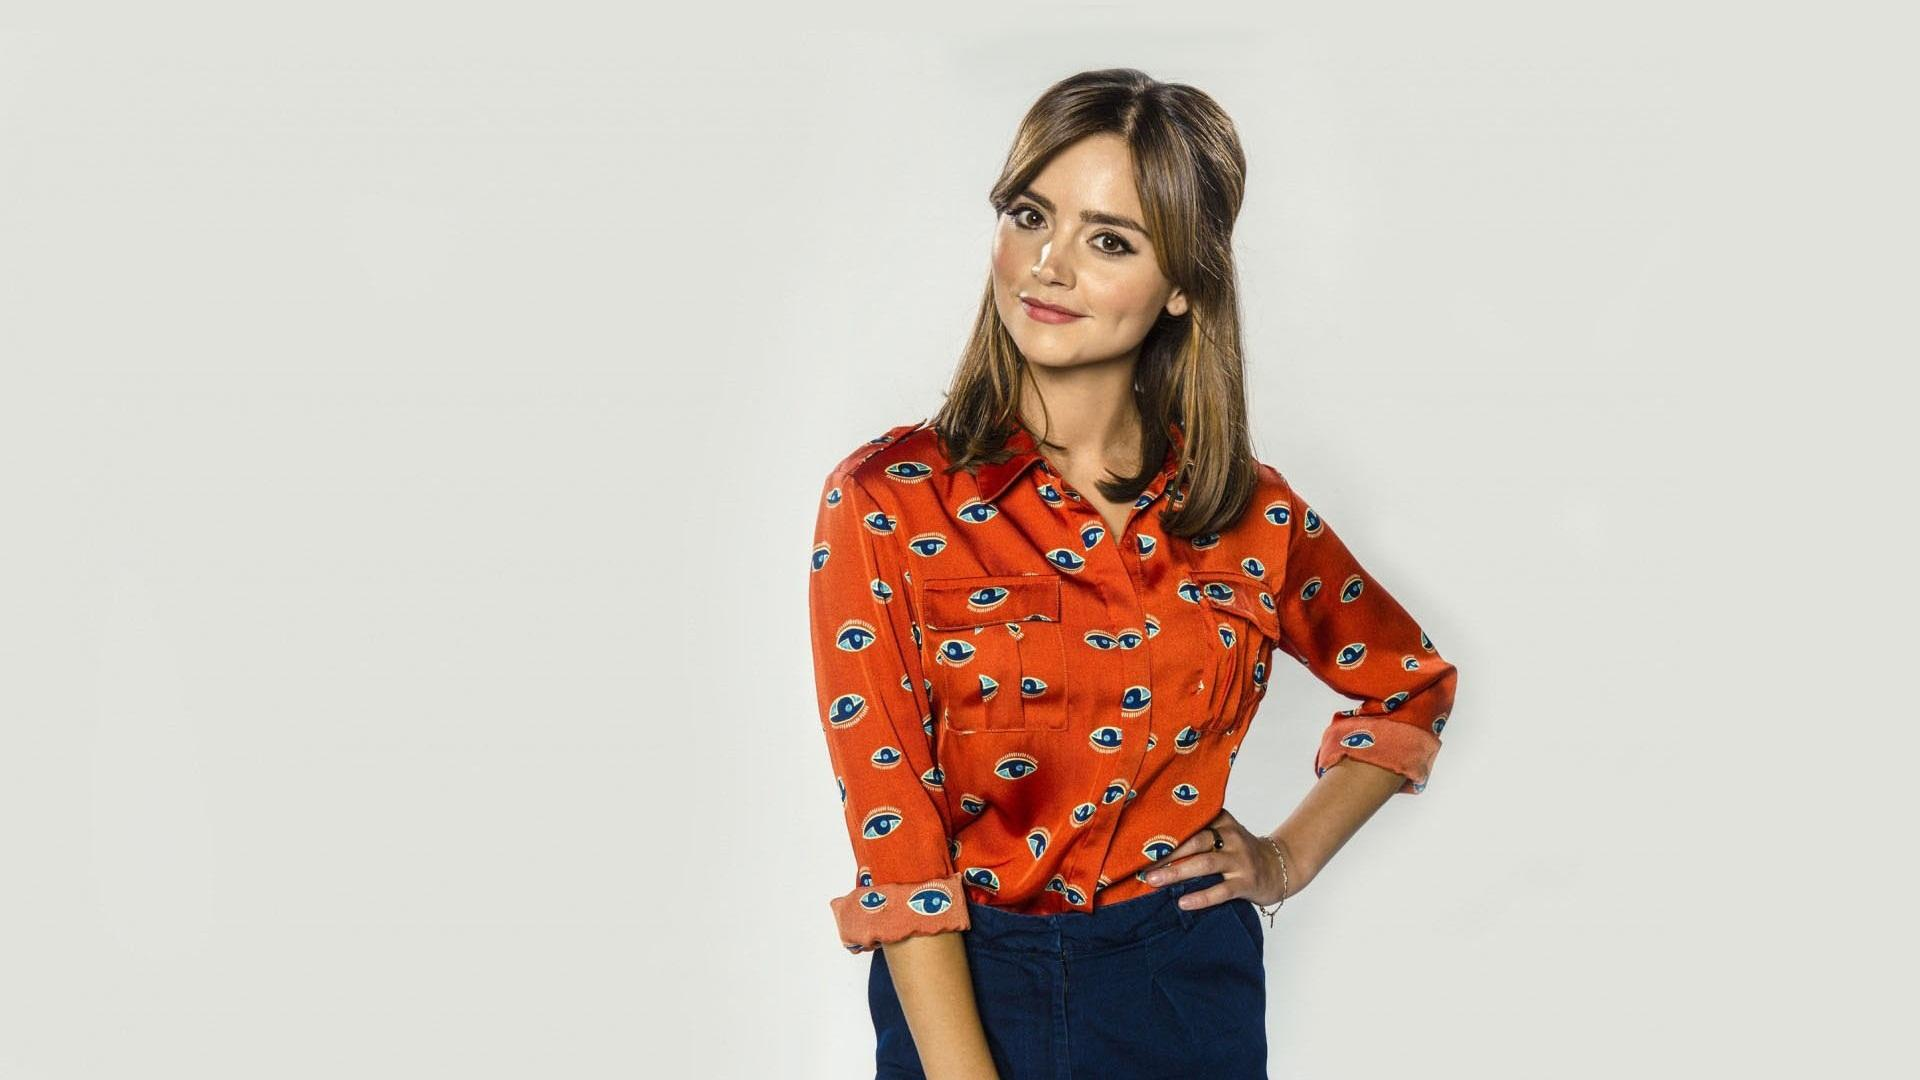 1920x1080 - Jenna-Louise Coleman Wallpapers 32